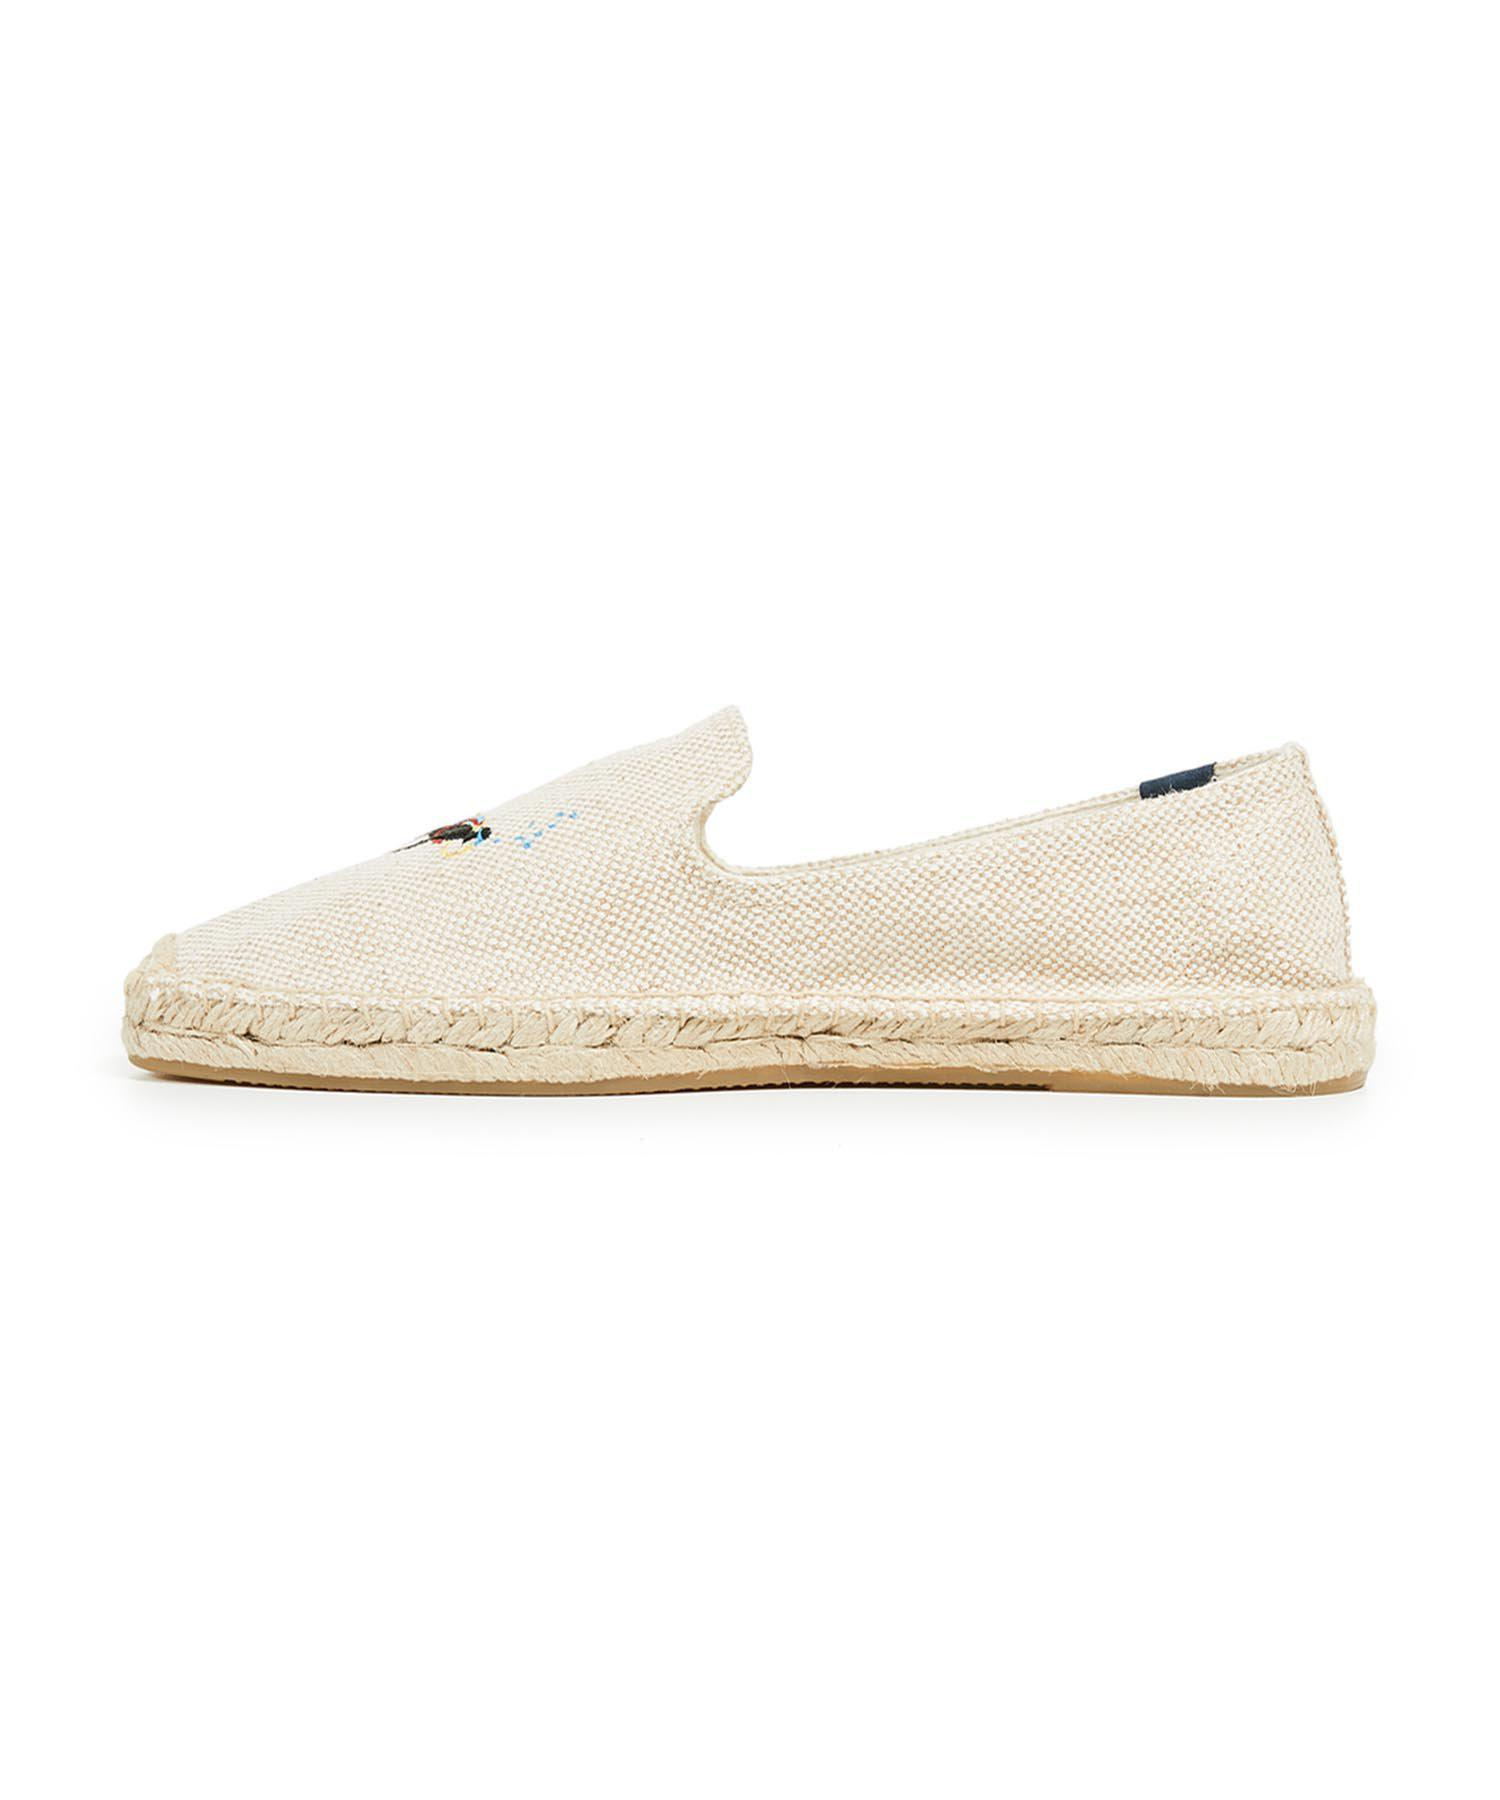 6d616378f04d Lyst - Soludos Scuba Shark Smoking Slipper In Cream in Natural for Men